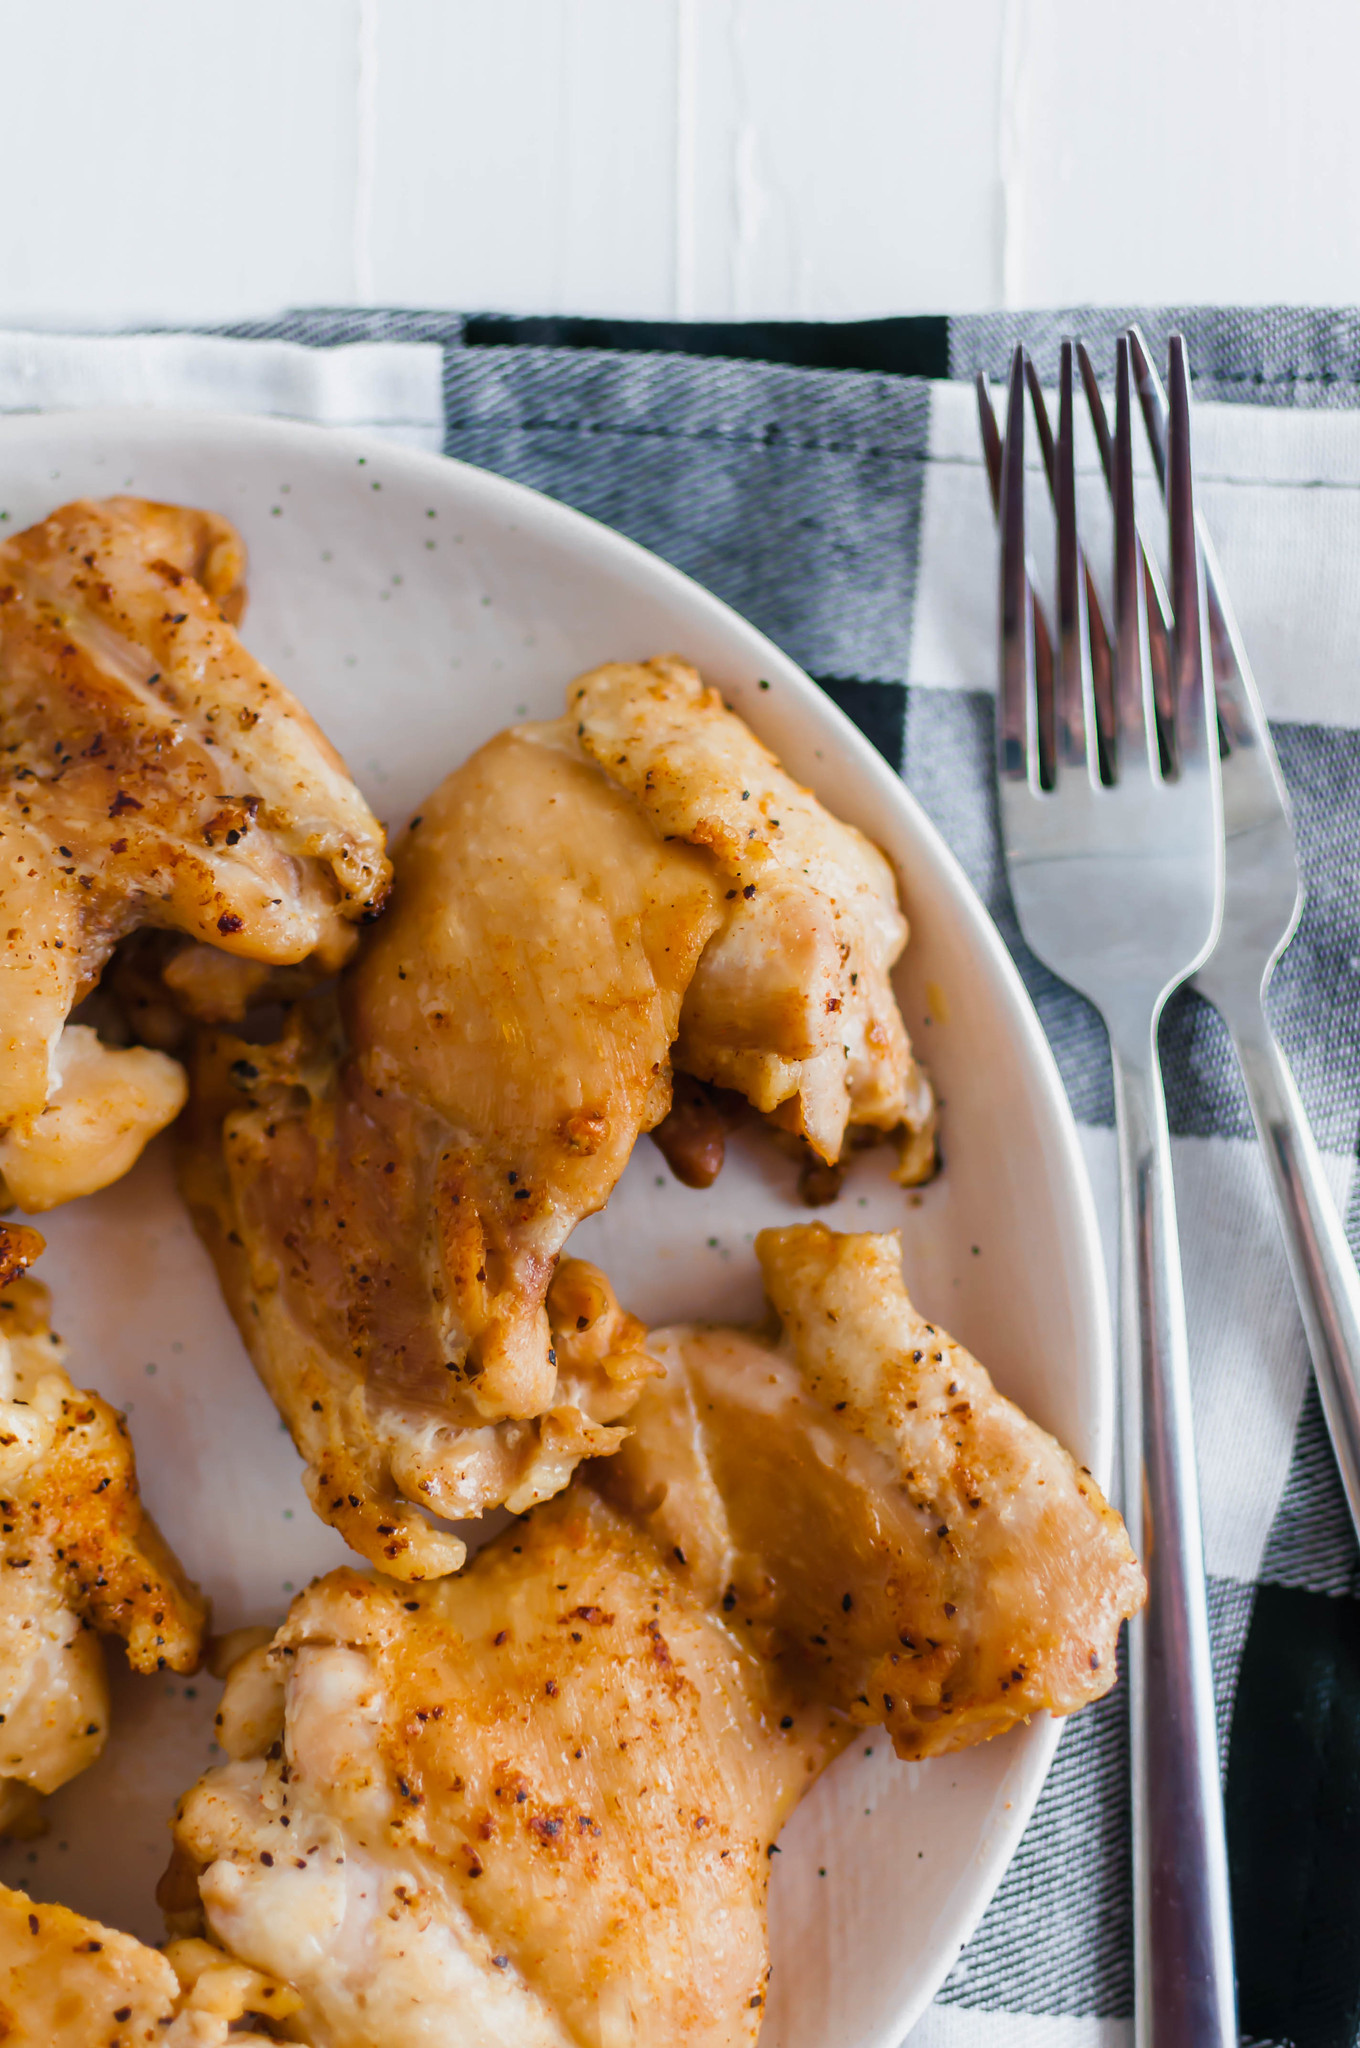 These basic Instant Pot Chicken Thighs will change your meal prep game. Simple to make and so many ways to utilize them. Make a simple pan gravy with the drippings or add to other recipes.